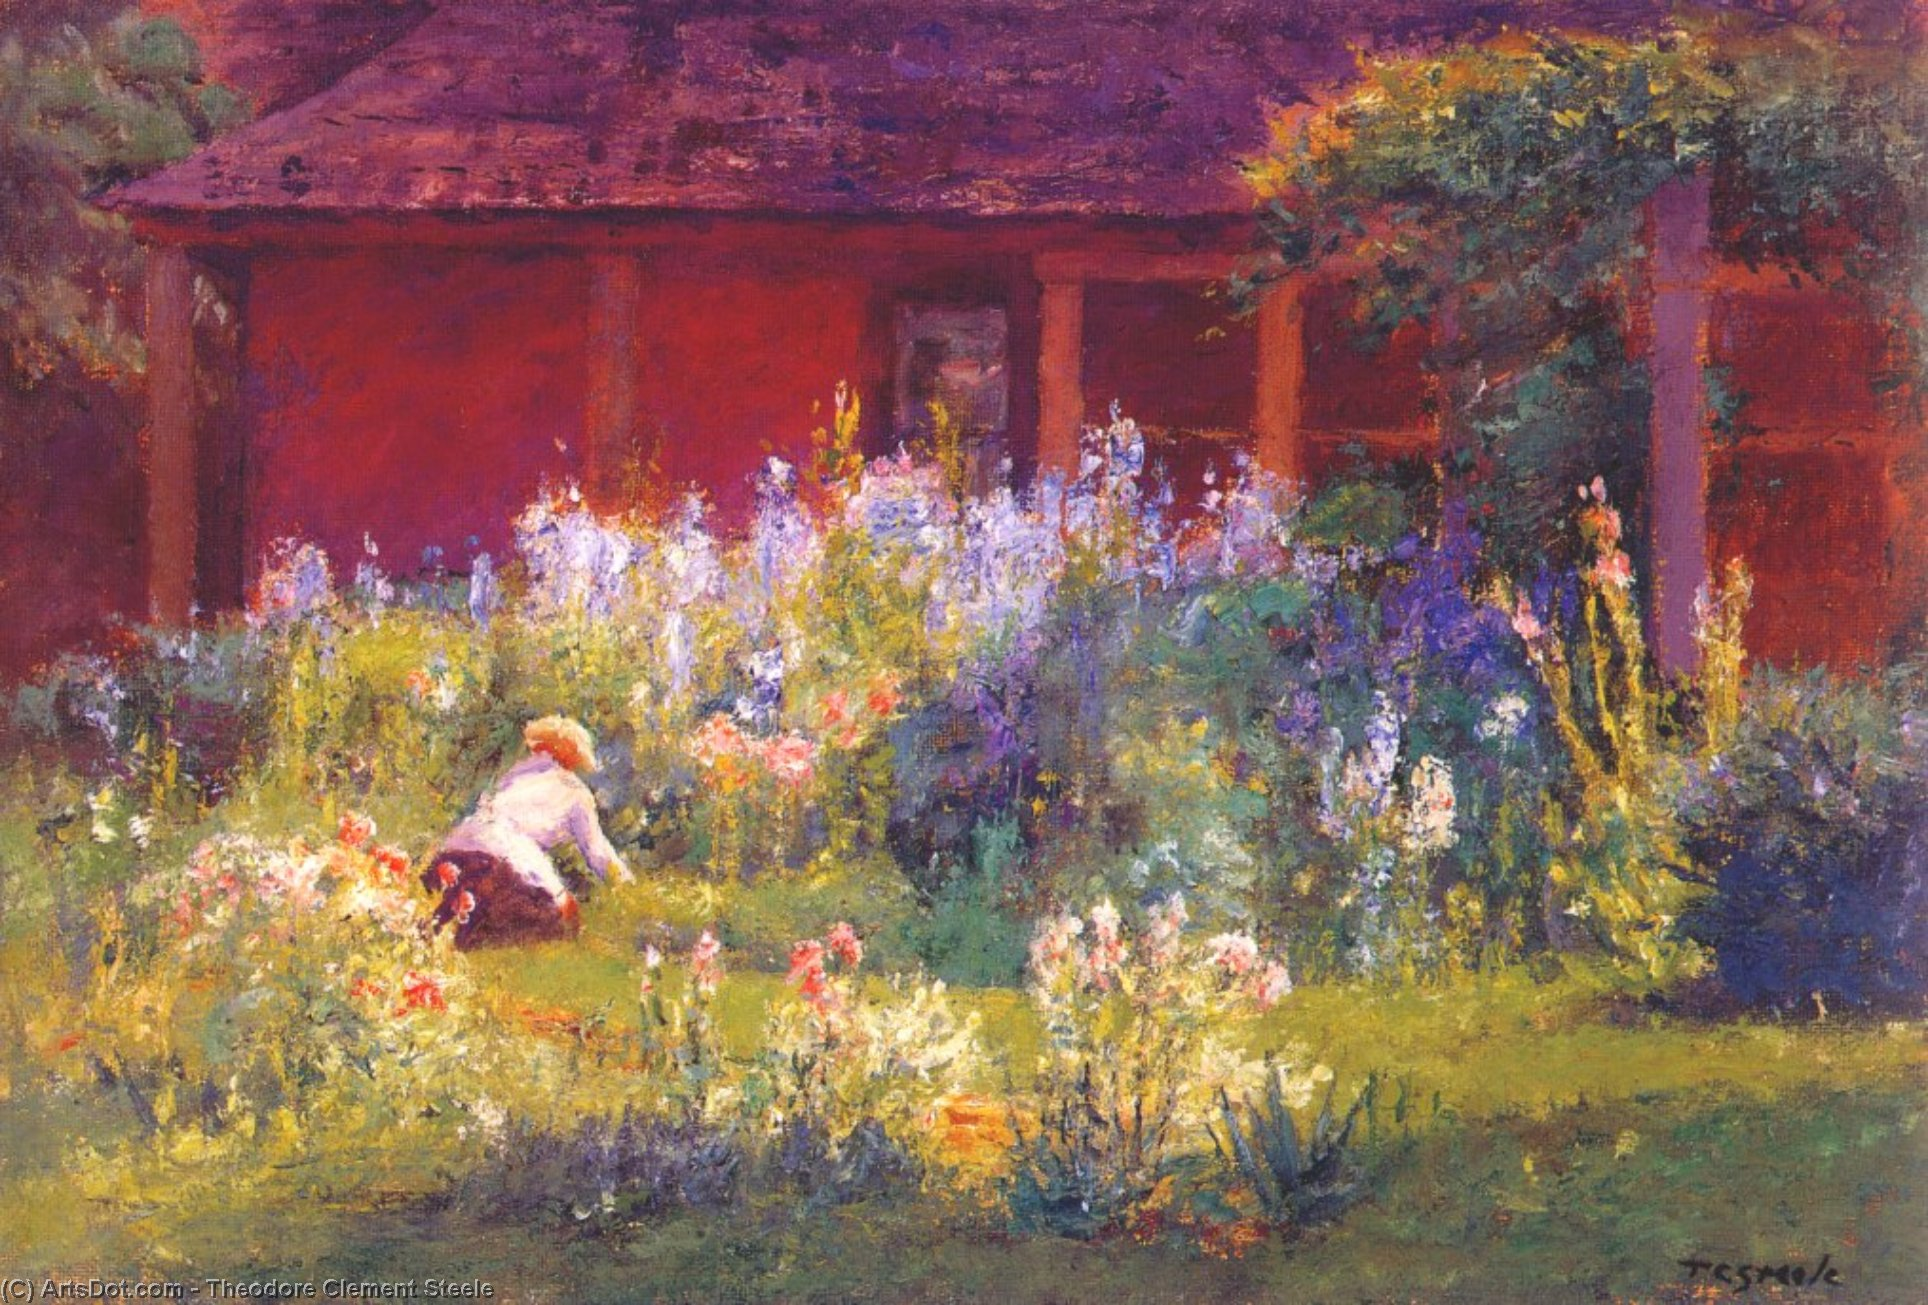 Selma In The Garden (Flower Garden) by Theodore Clement Steele (1847-1926, United States)